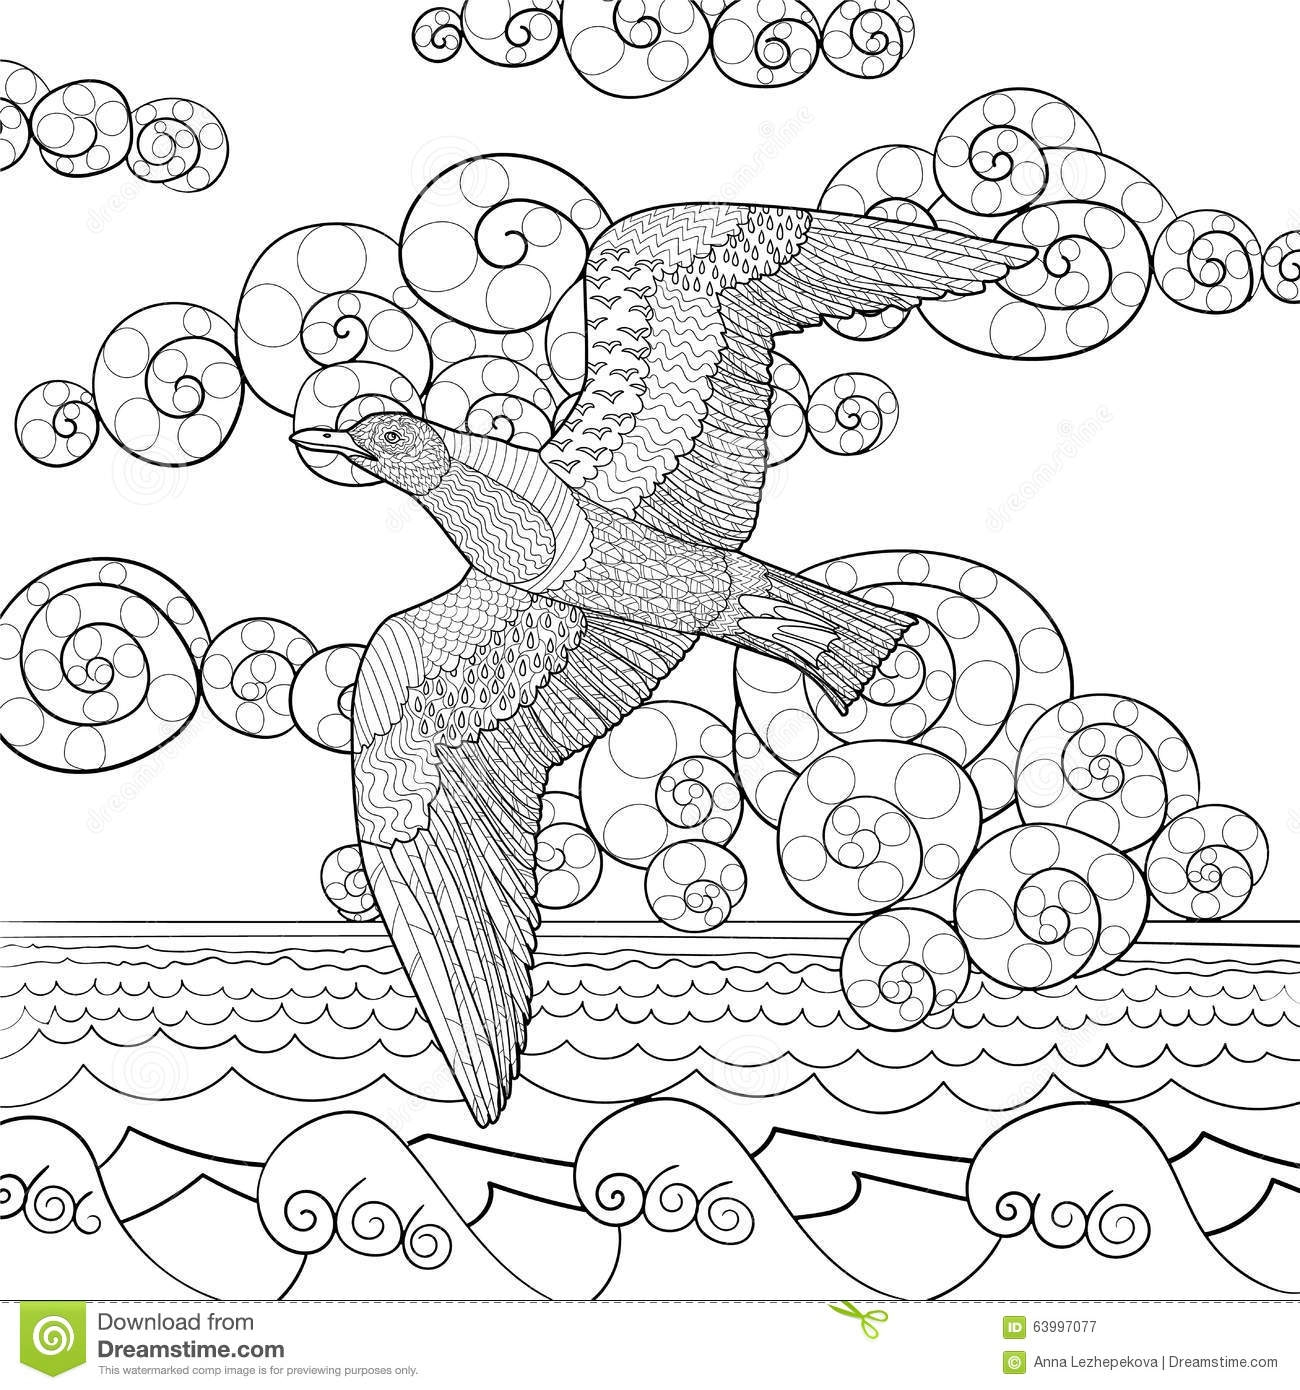 t shirt coloring page - stock illustration antistress coloring page seagull flying high details adult black white hand drawn doodle oceanic bird sketch tattoo image